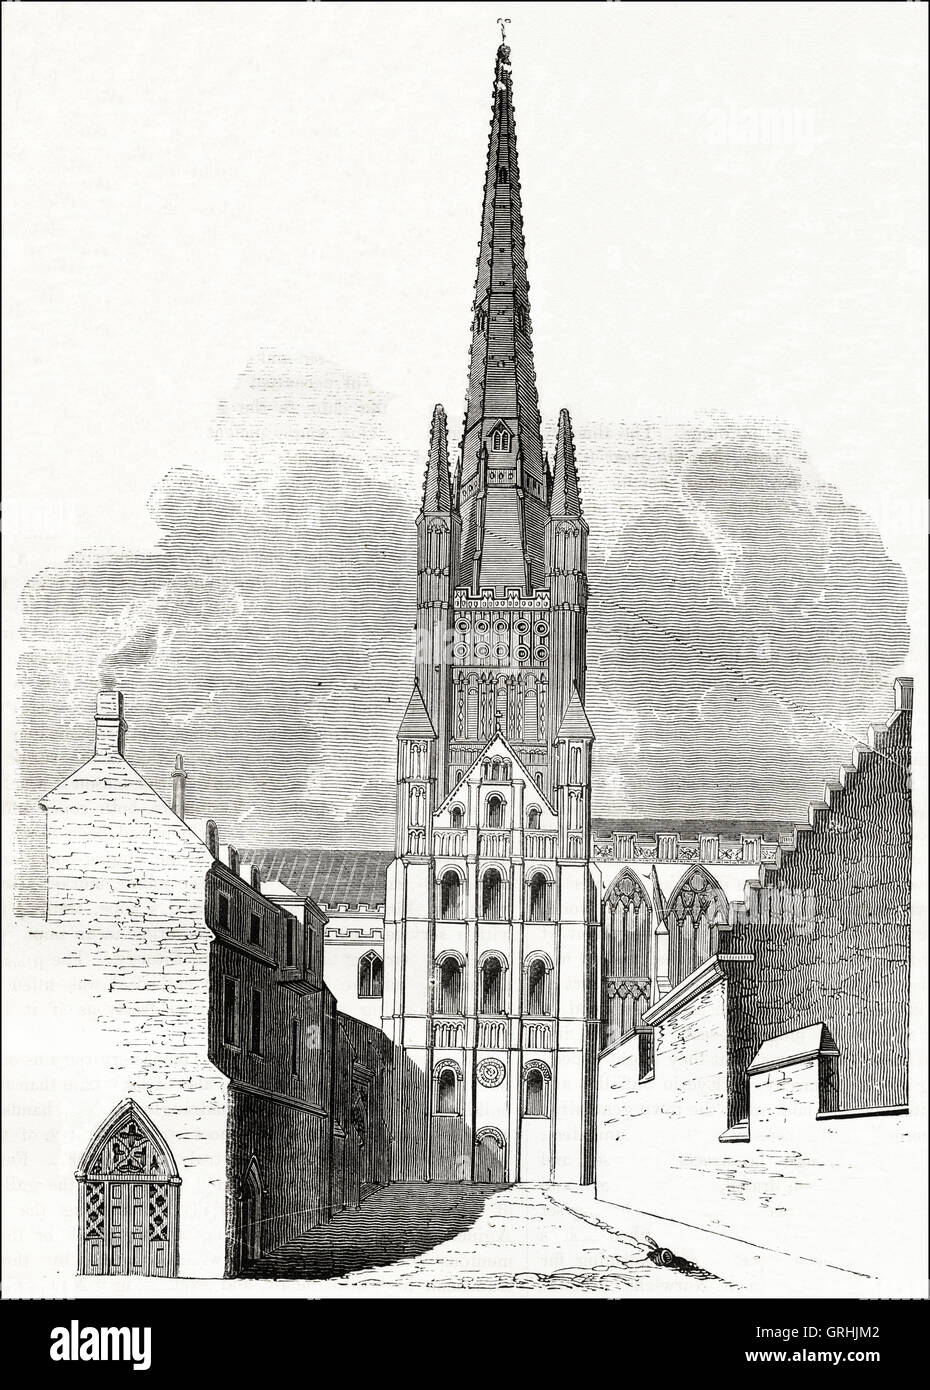 Norwich Cathedral 12th century begun in 1096 & completed in 1145. Victorian woodcut engraving circa 1845. - Stock Image